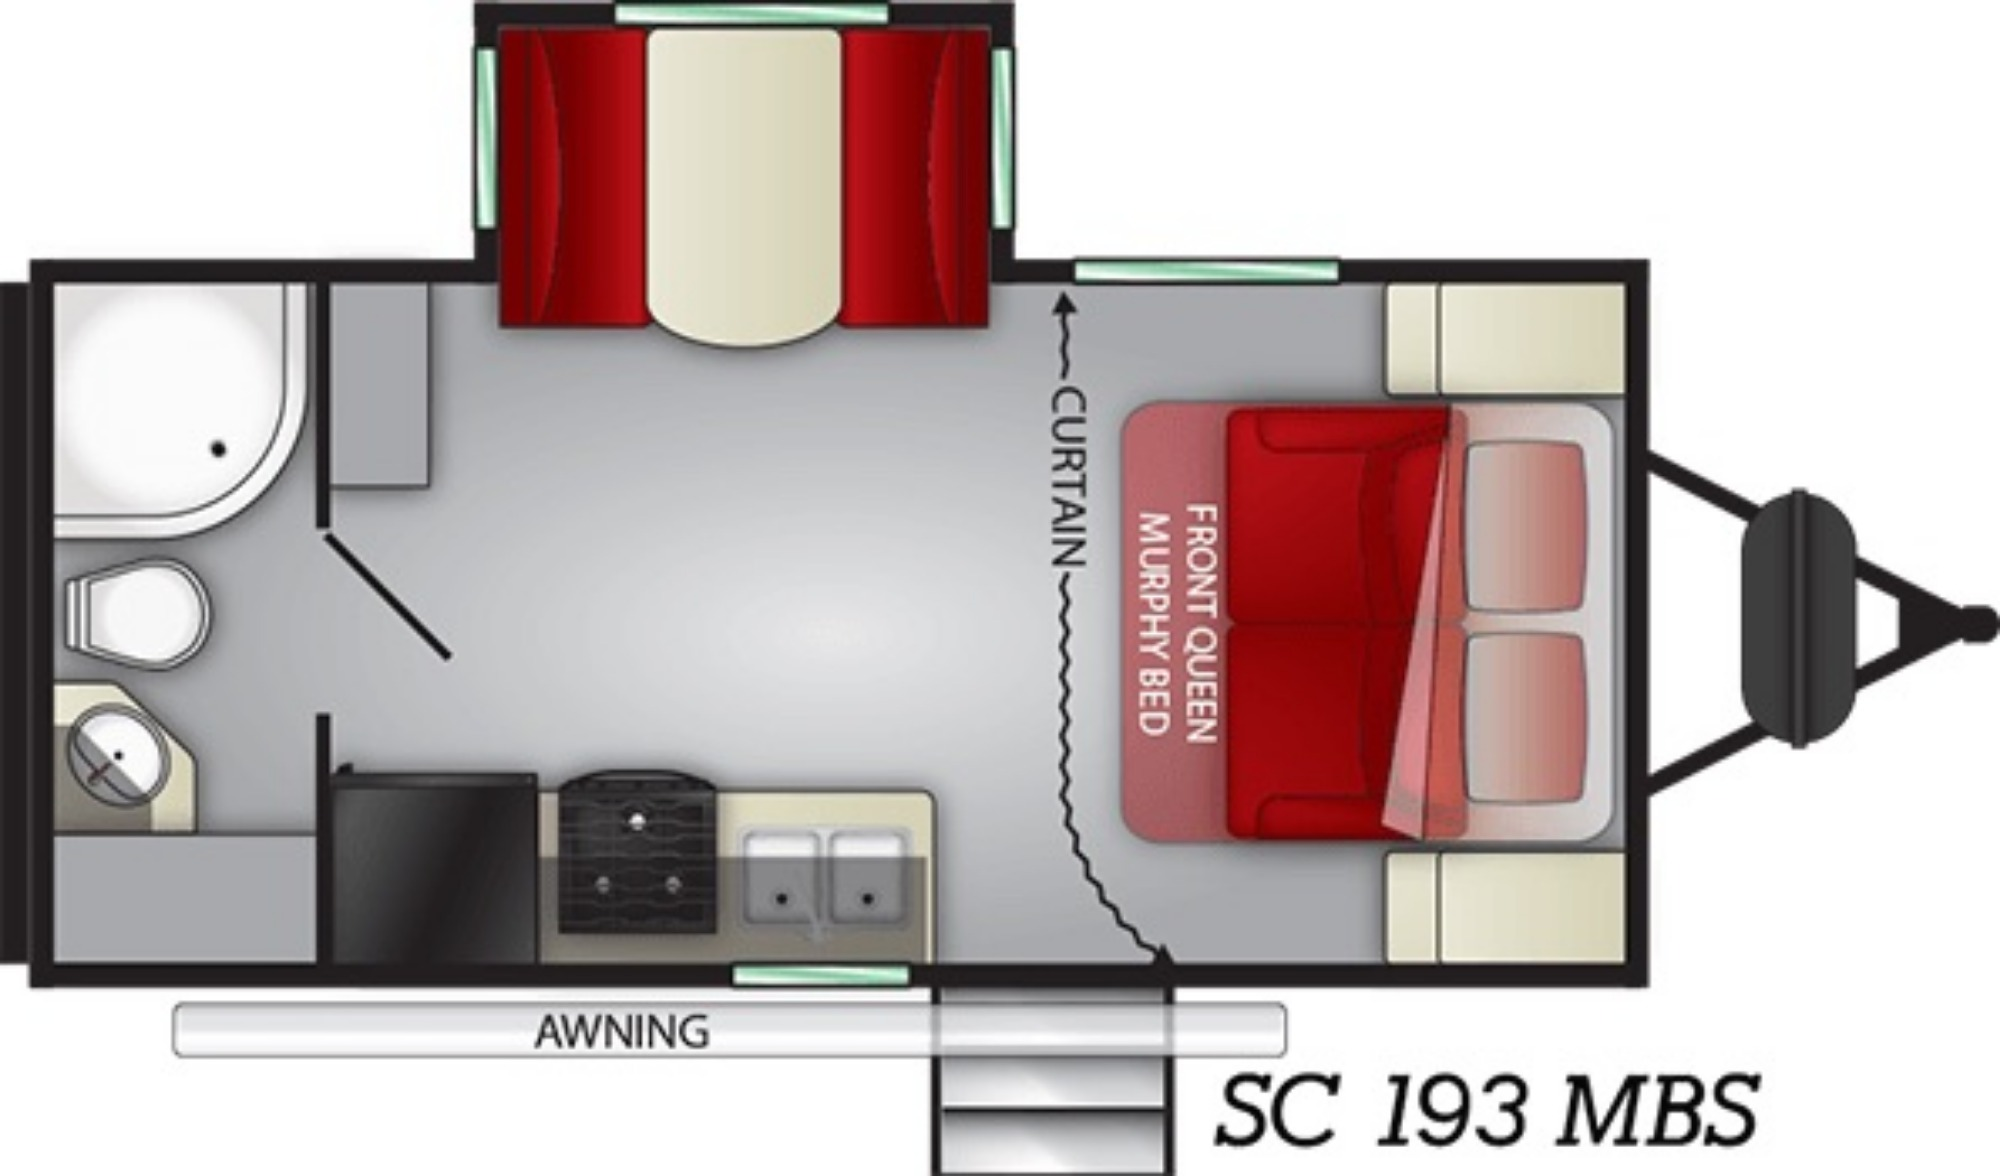 Living Room : 2019-CRUISER RV-ID193MBS